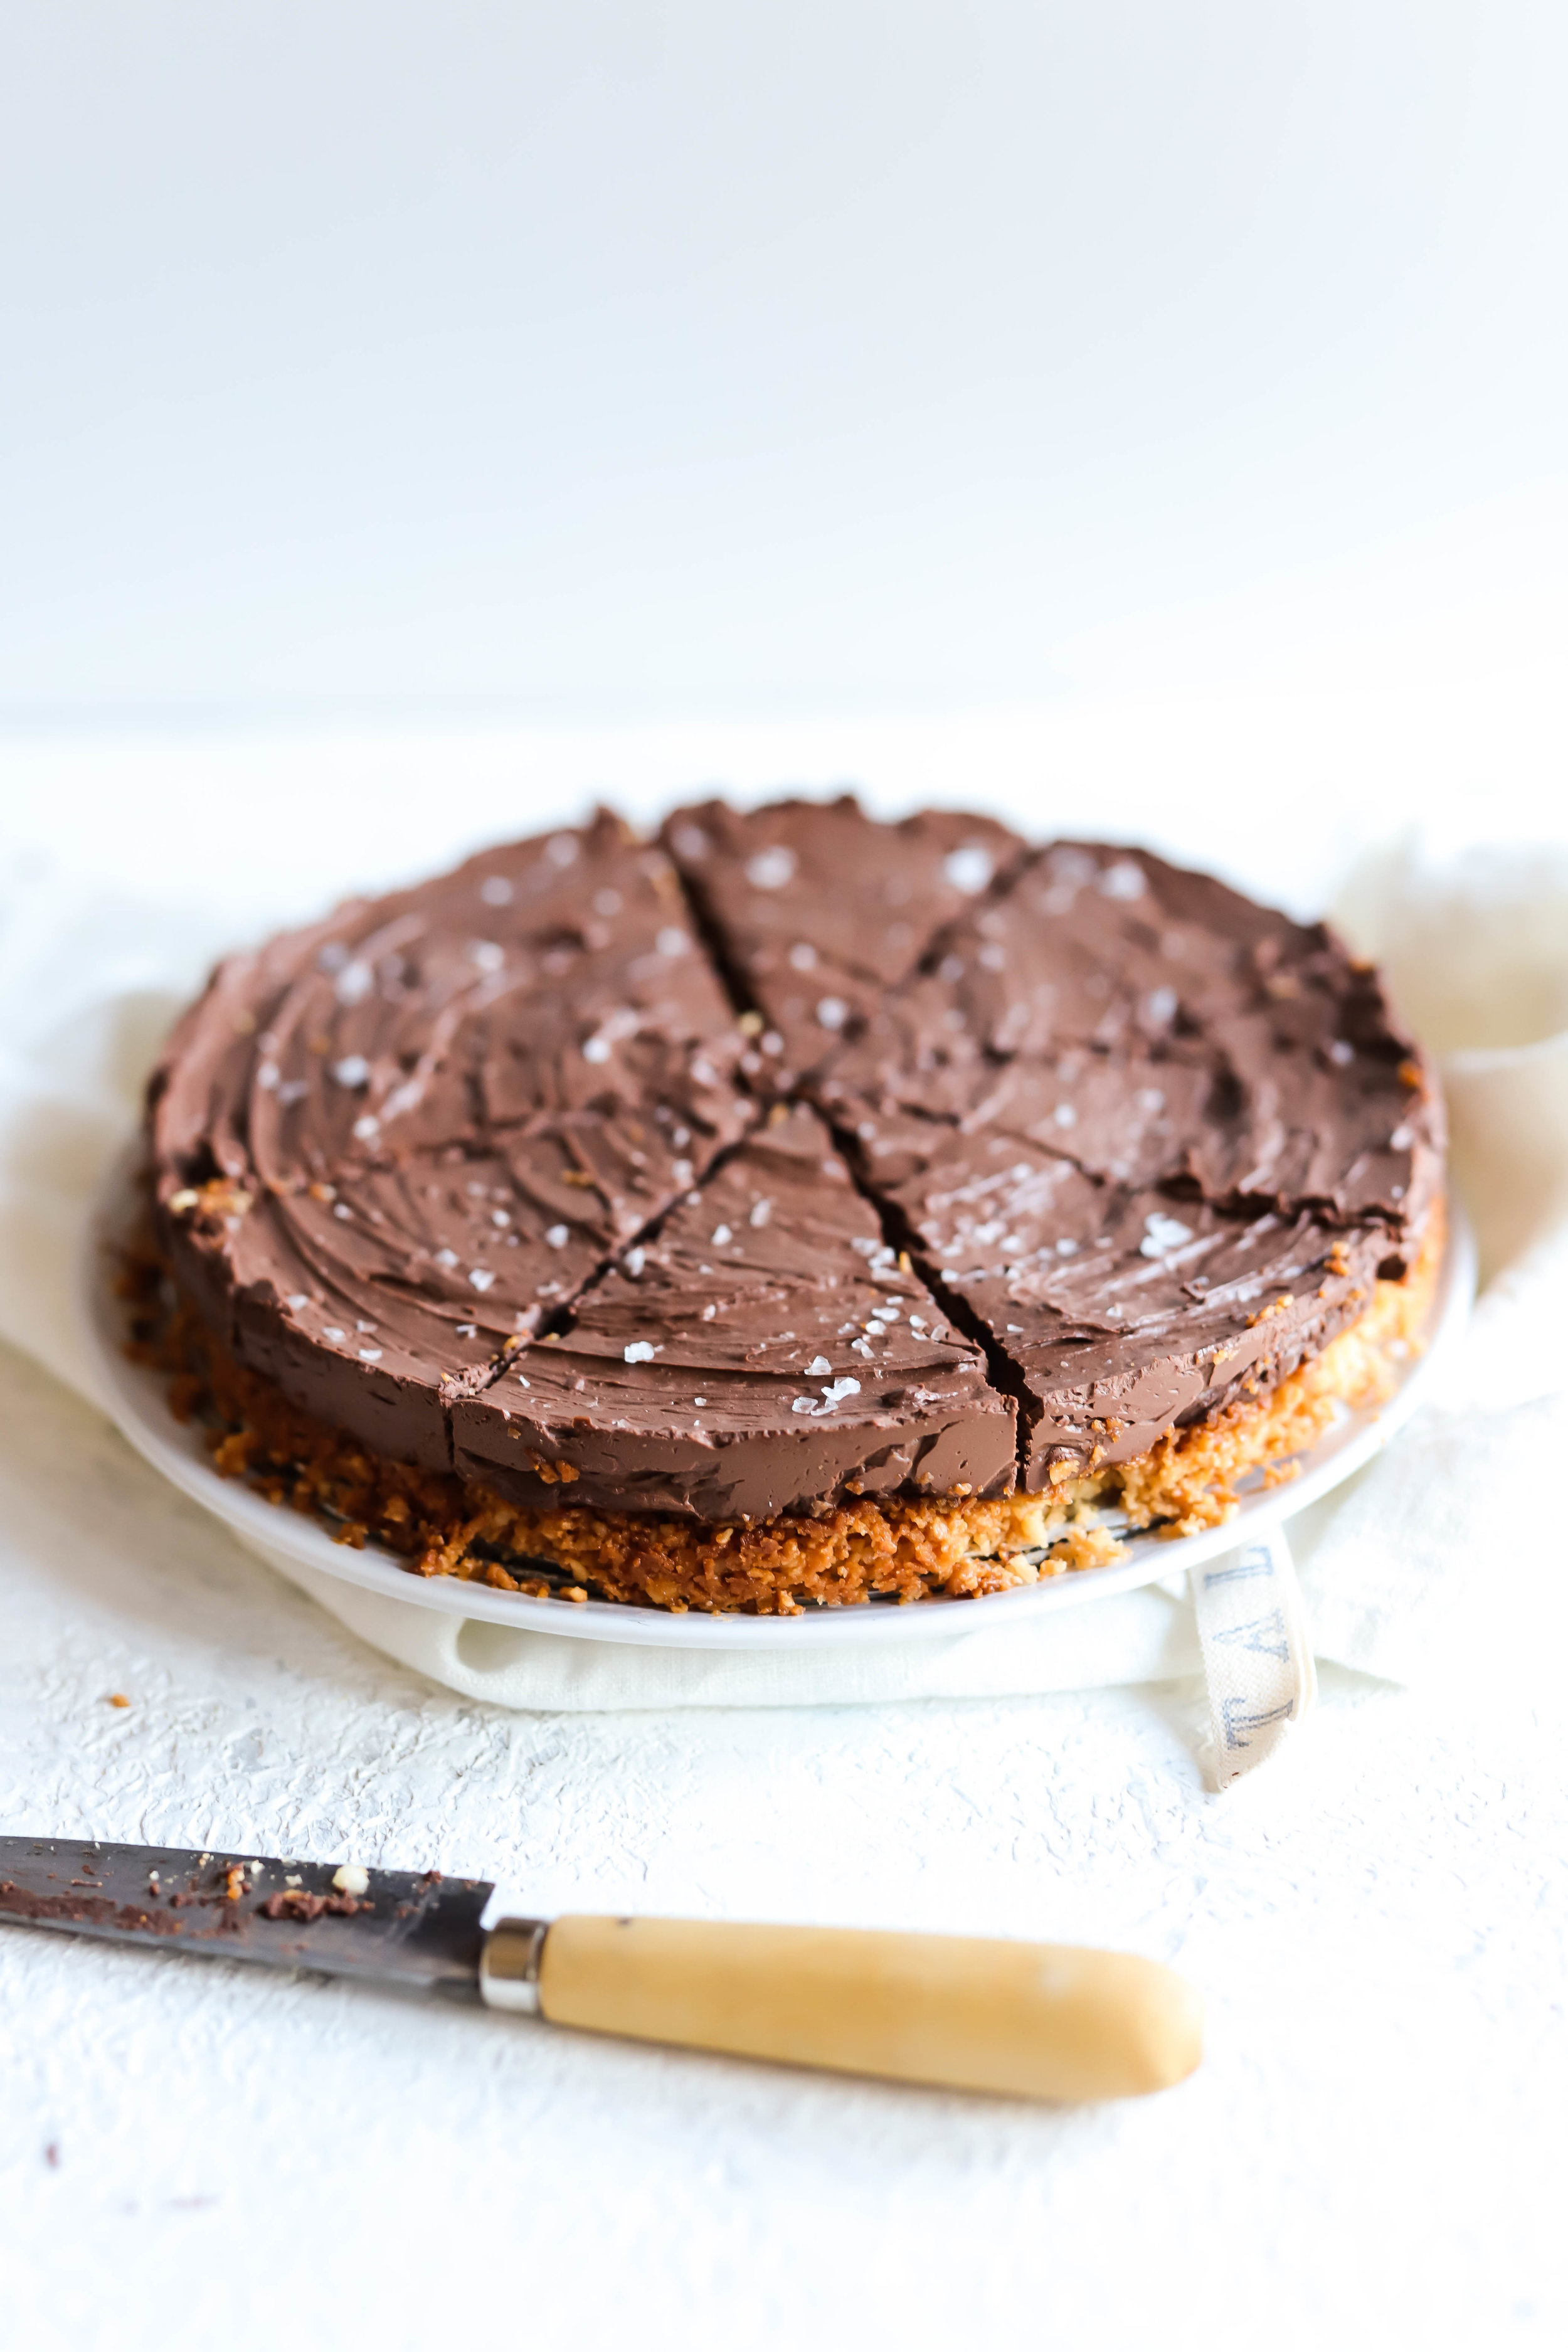 vegan and gluten-free chocolate pie sliced into eight pieces with a knife to the side